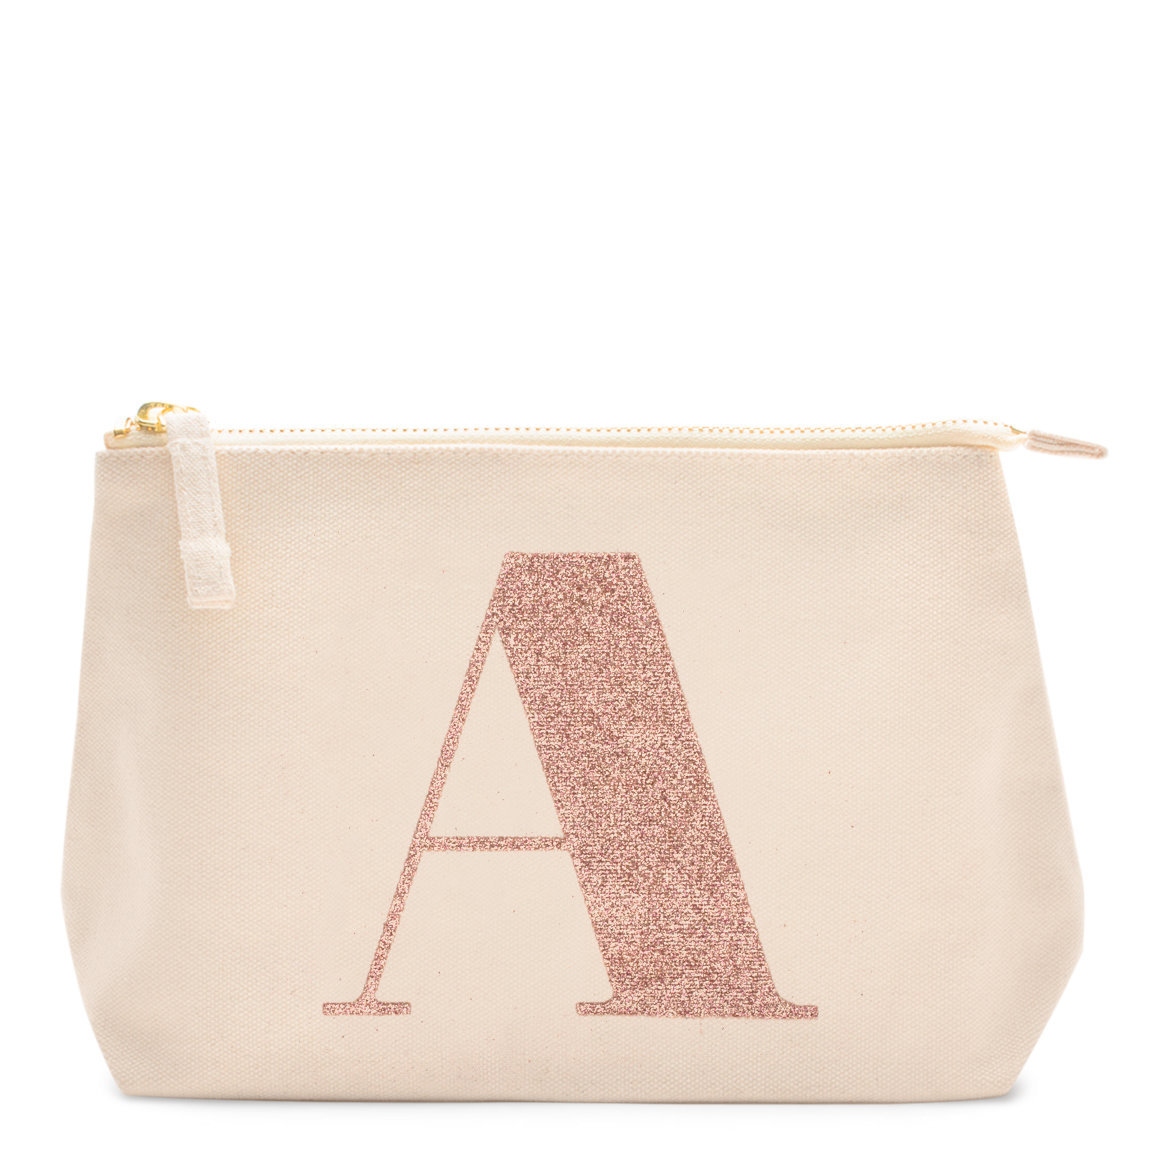 Alphabet Bags Rose Gold Glitter Initial Makeup Bag Letter A product smear.